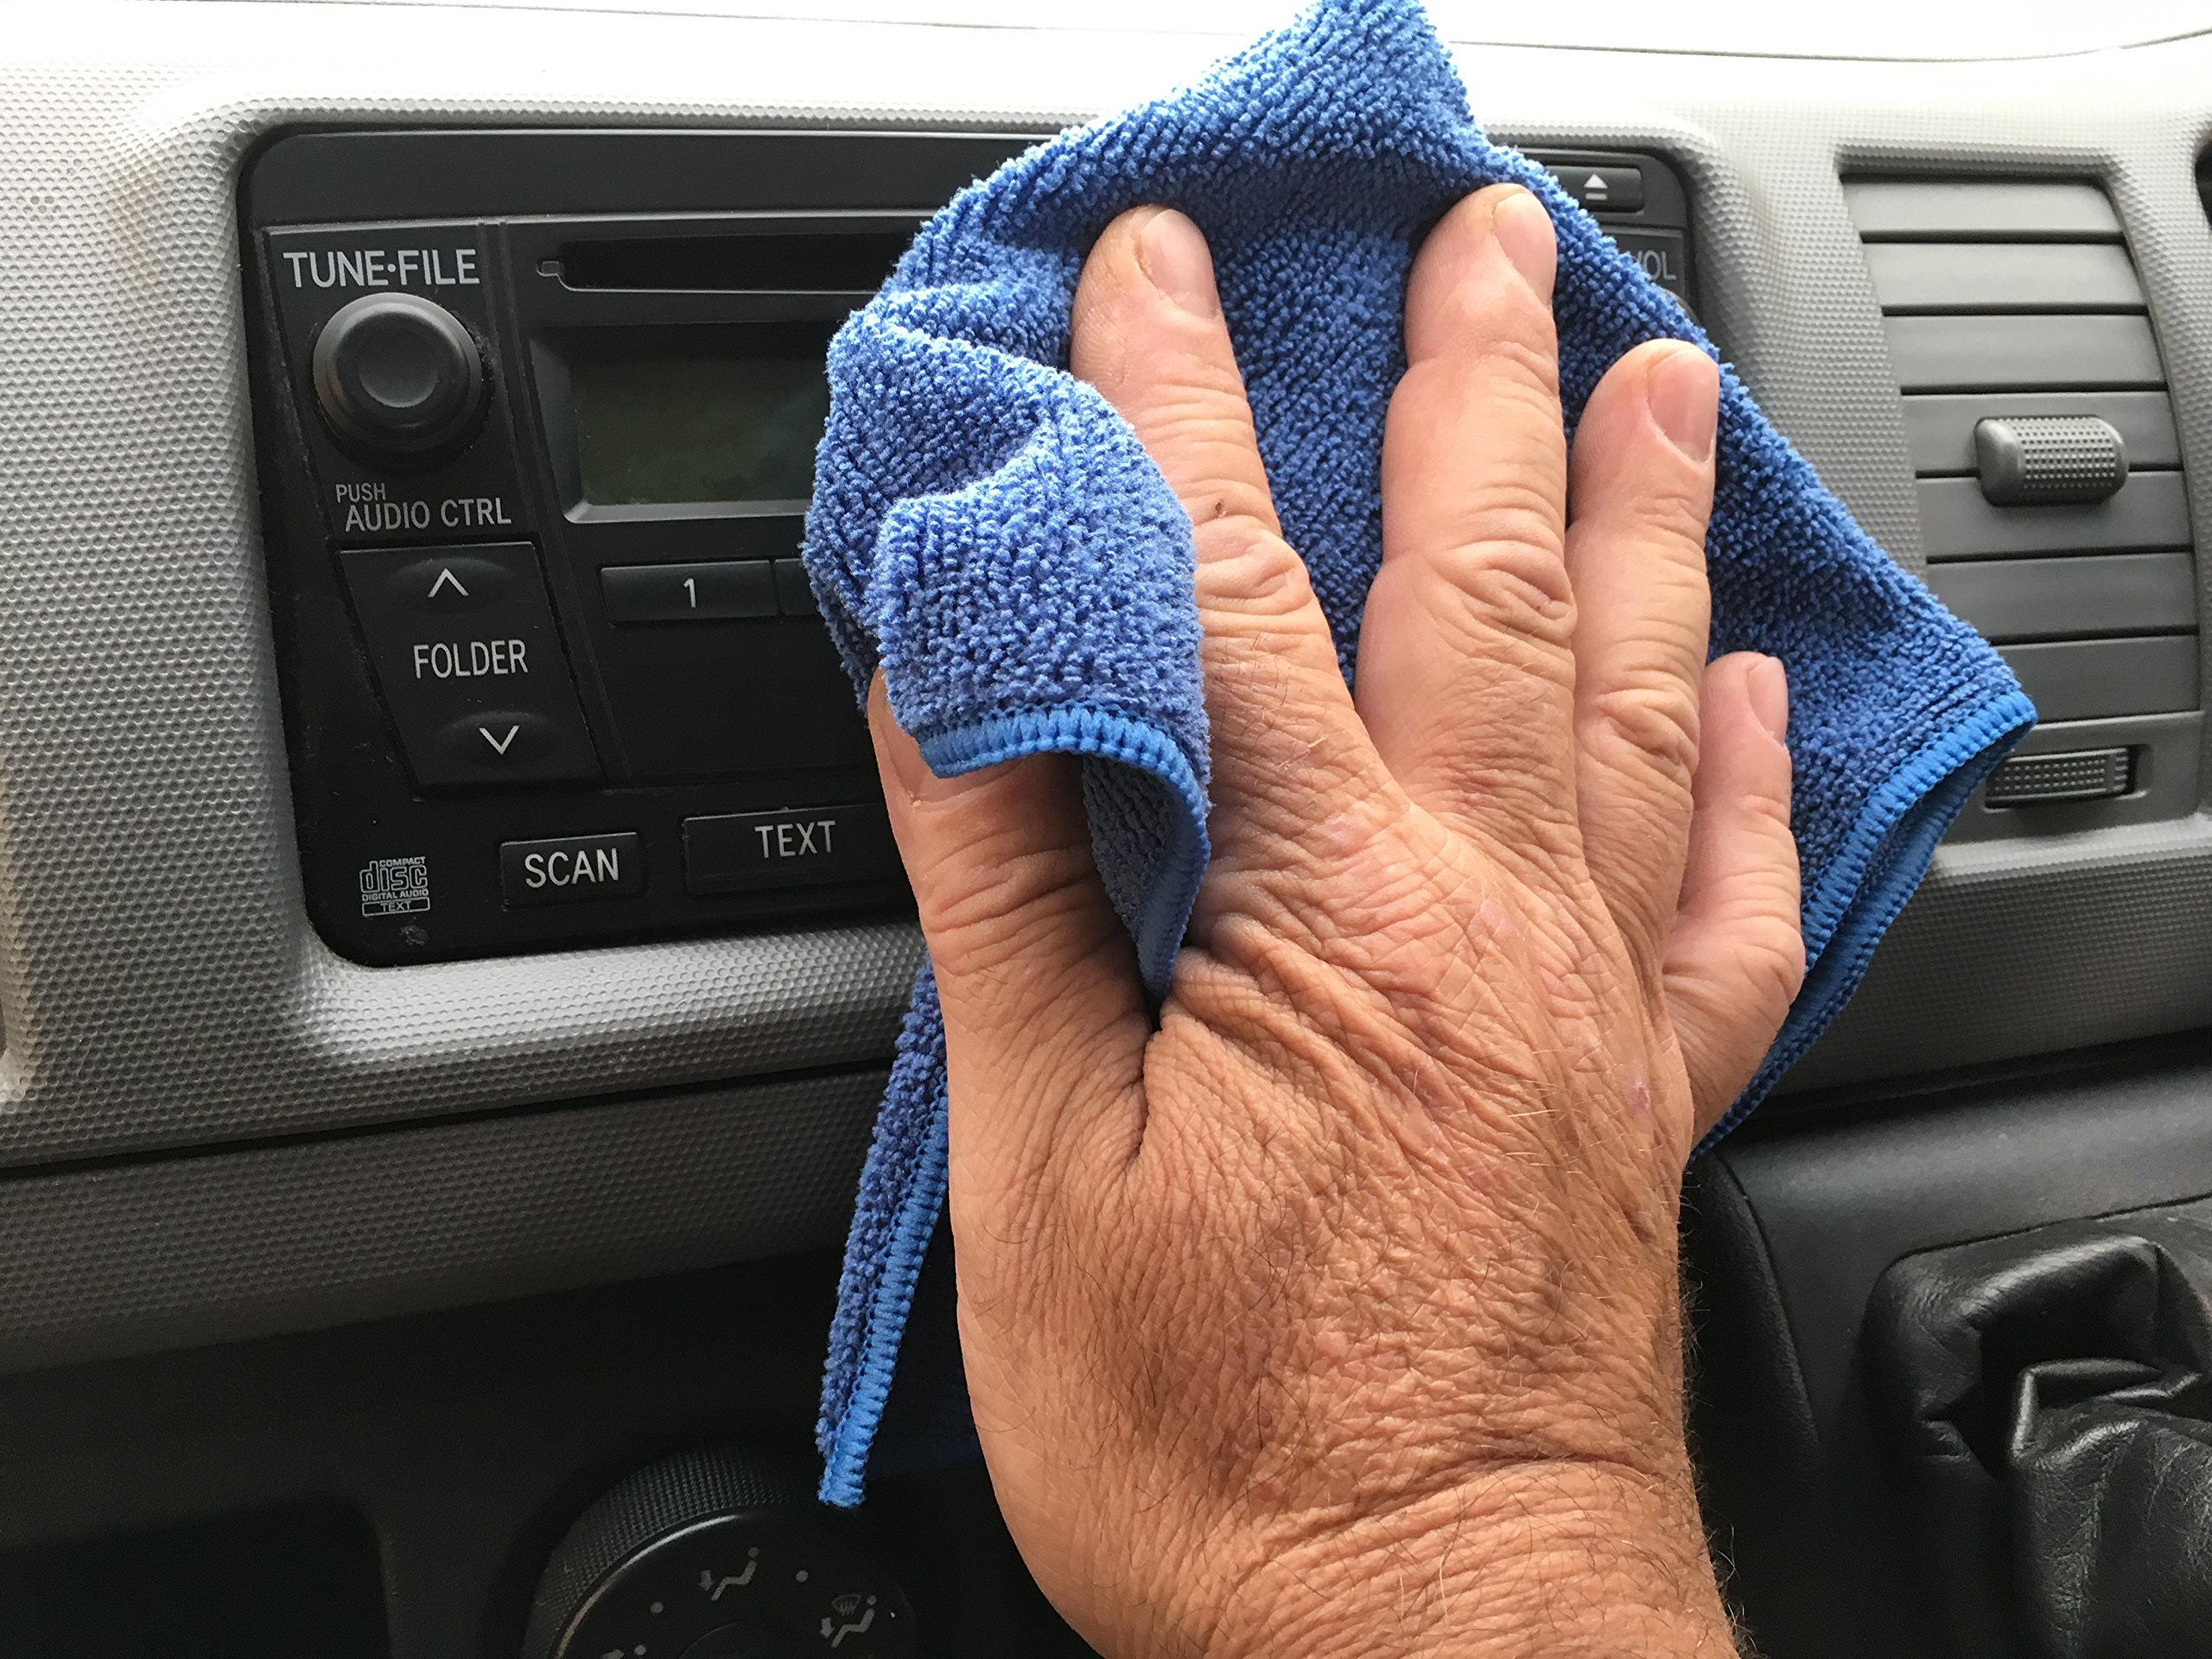 ViroKleen Microfiber Cleaning Cloth 12Qty Cleans with Very Little Effort, Ideal for Cleaning & Dusting your Valuable Goods from Electronics, Glass, IPad, TV Screens, Kitchen, Car, Furniture Polishing by ViroKleen (Image #3)